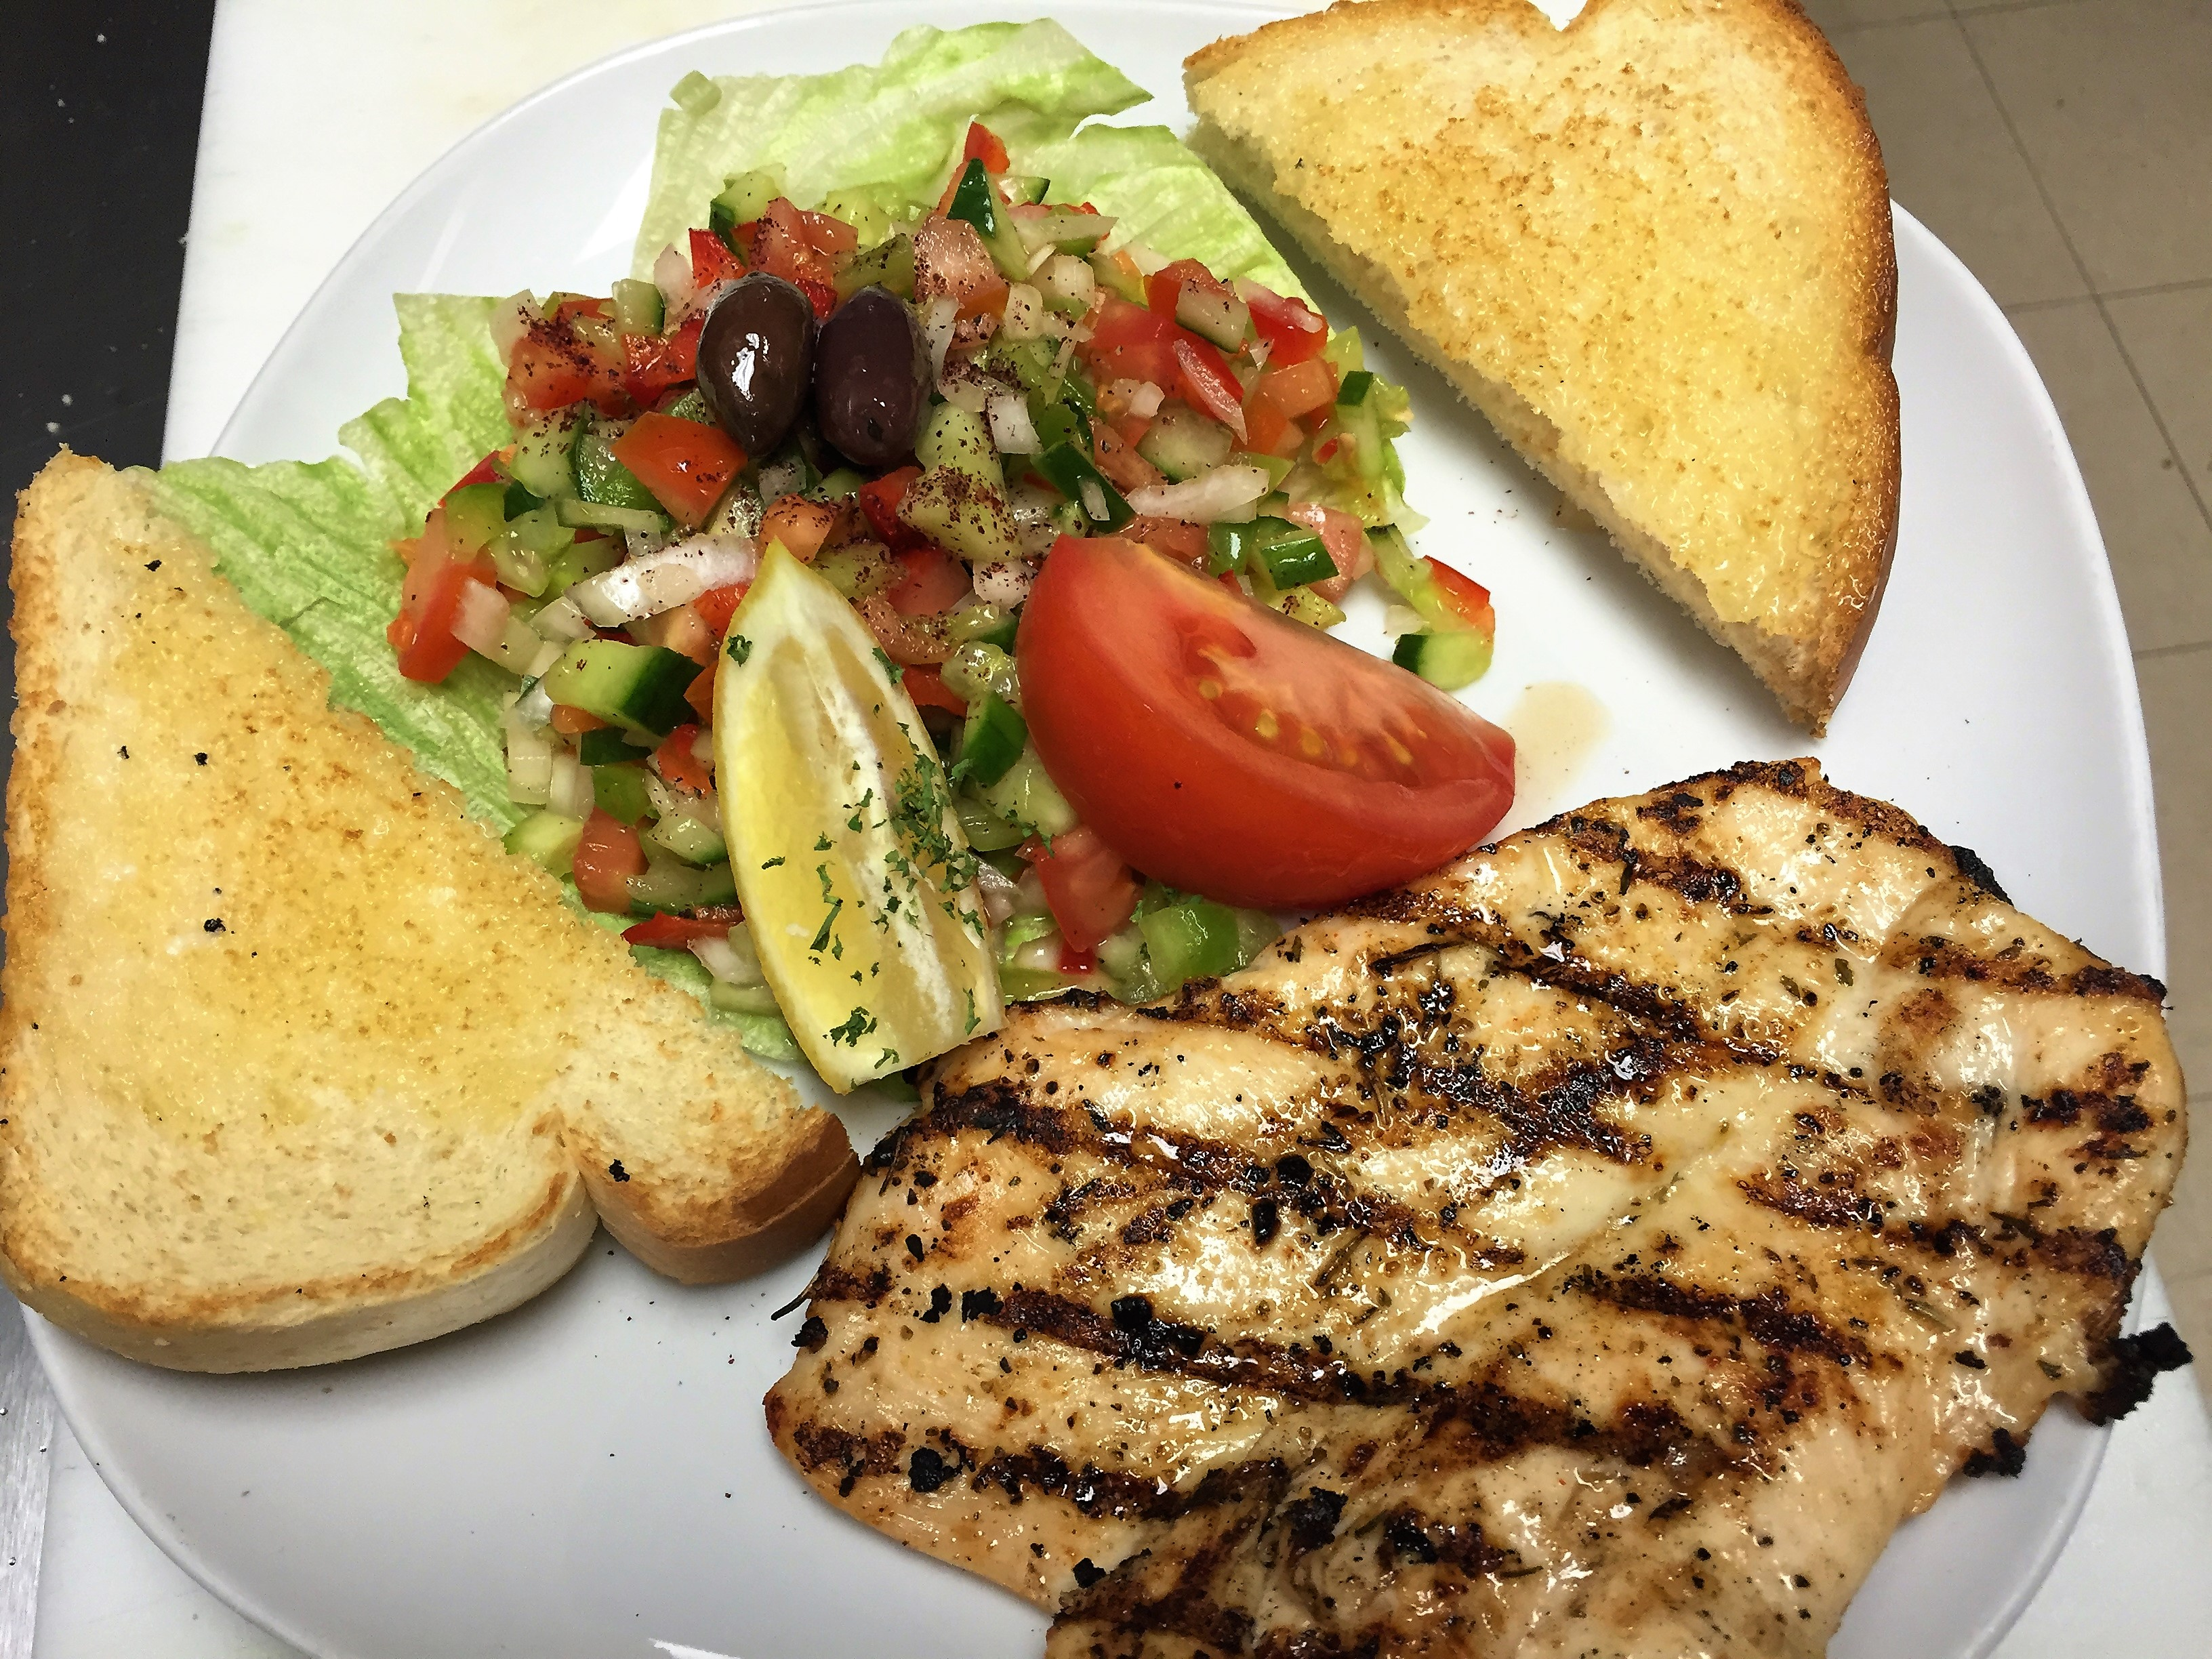 Grilled chicken with light salad